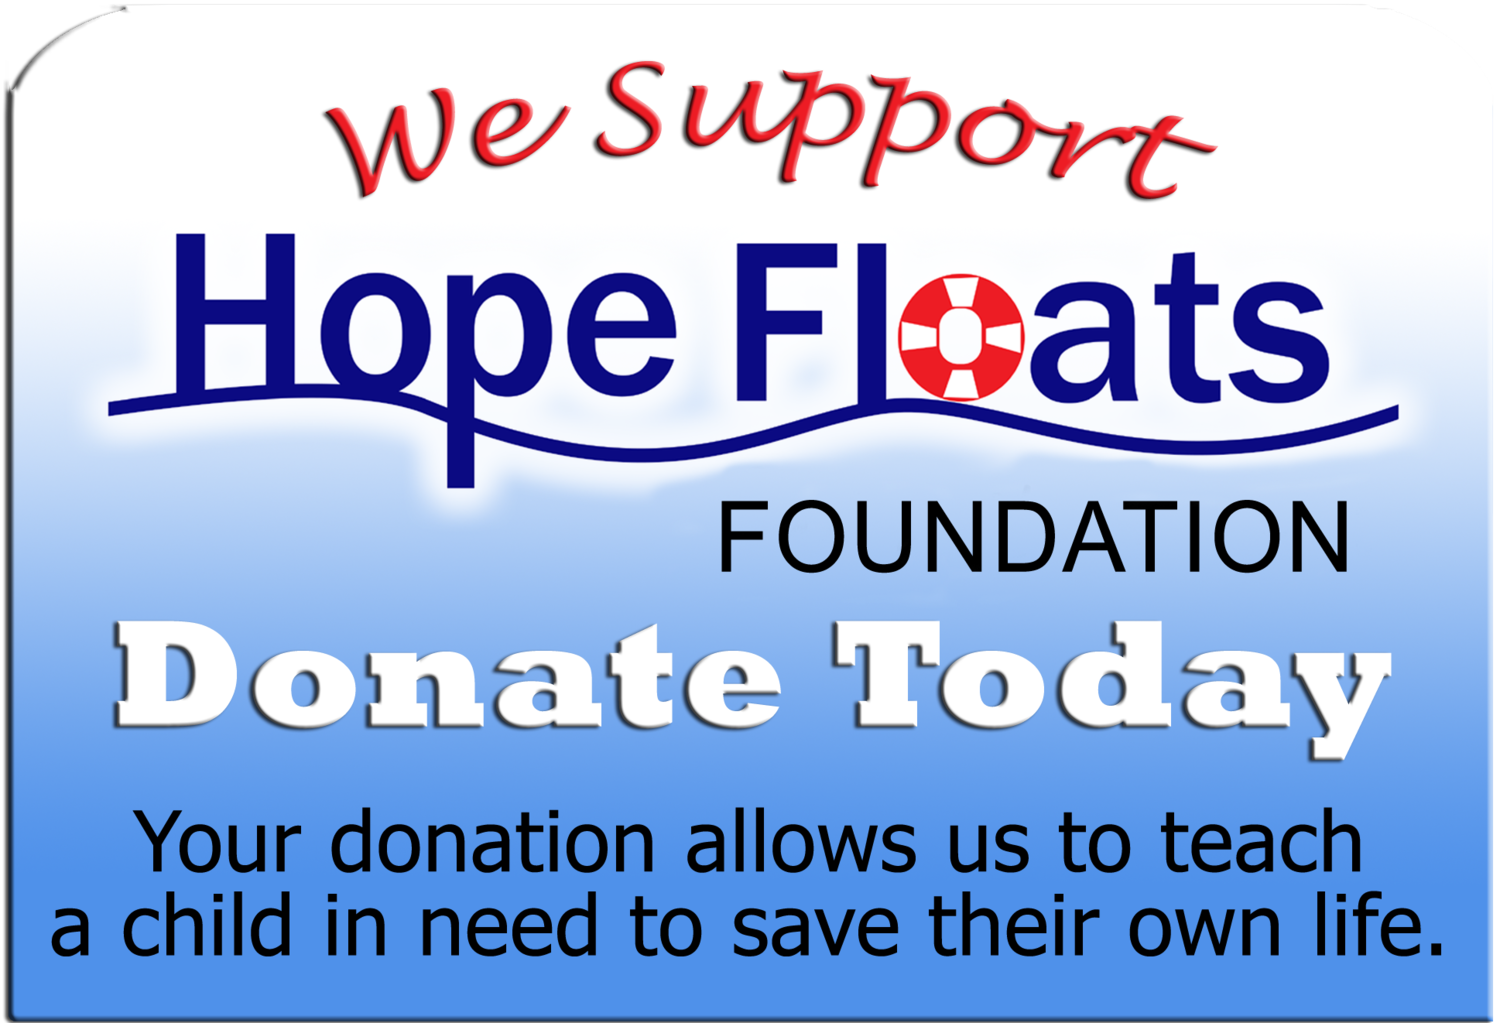 We support Hope Floats Foundation. Donate today. Your donation allows us to teach a child in need to save their own life.